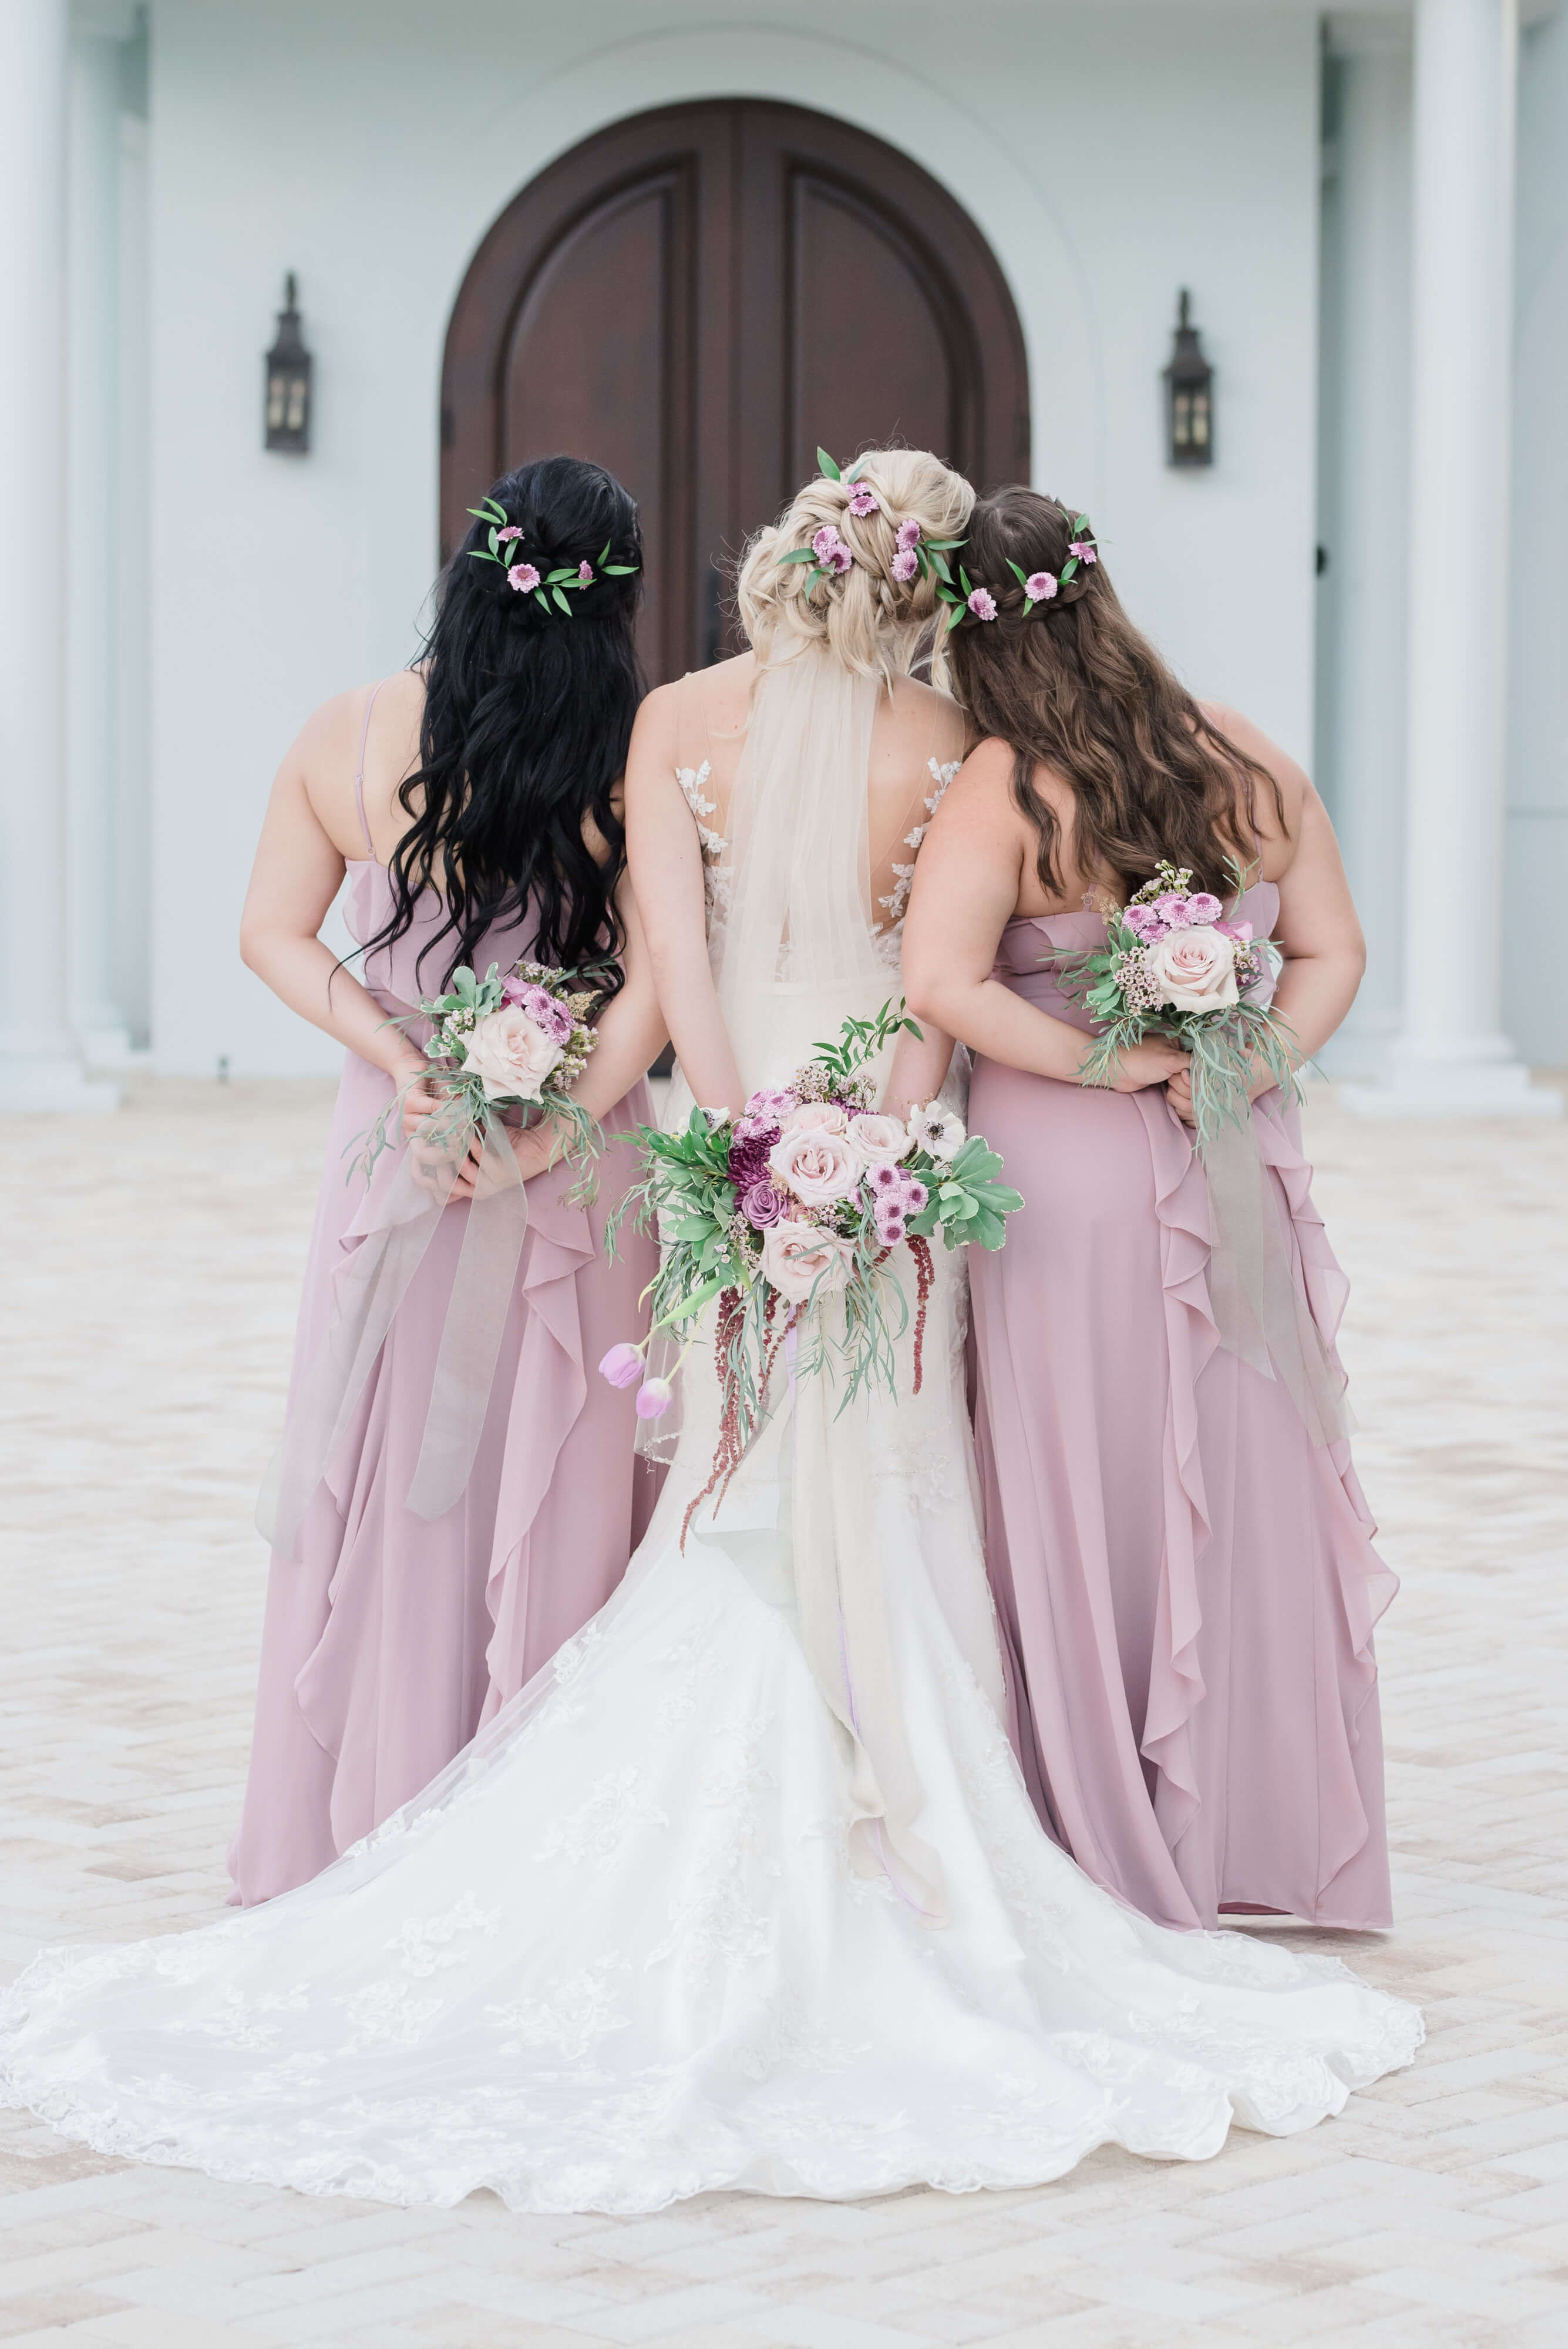 bridemaids and bride photo, long dresses with bouquets